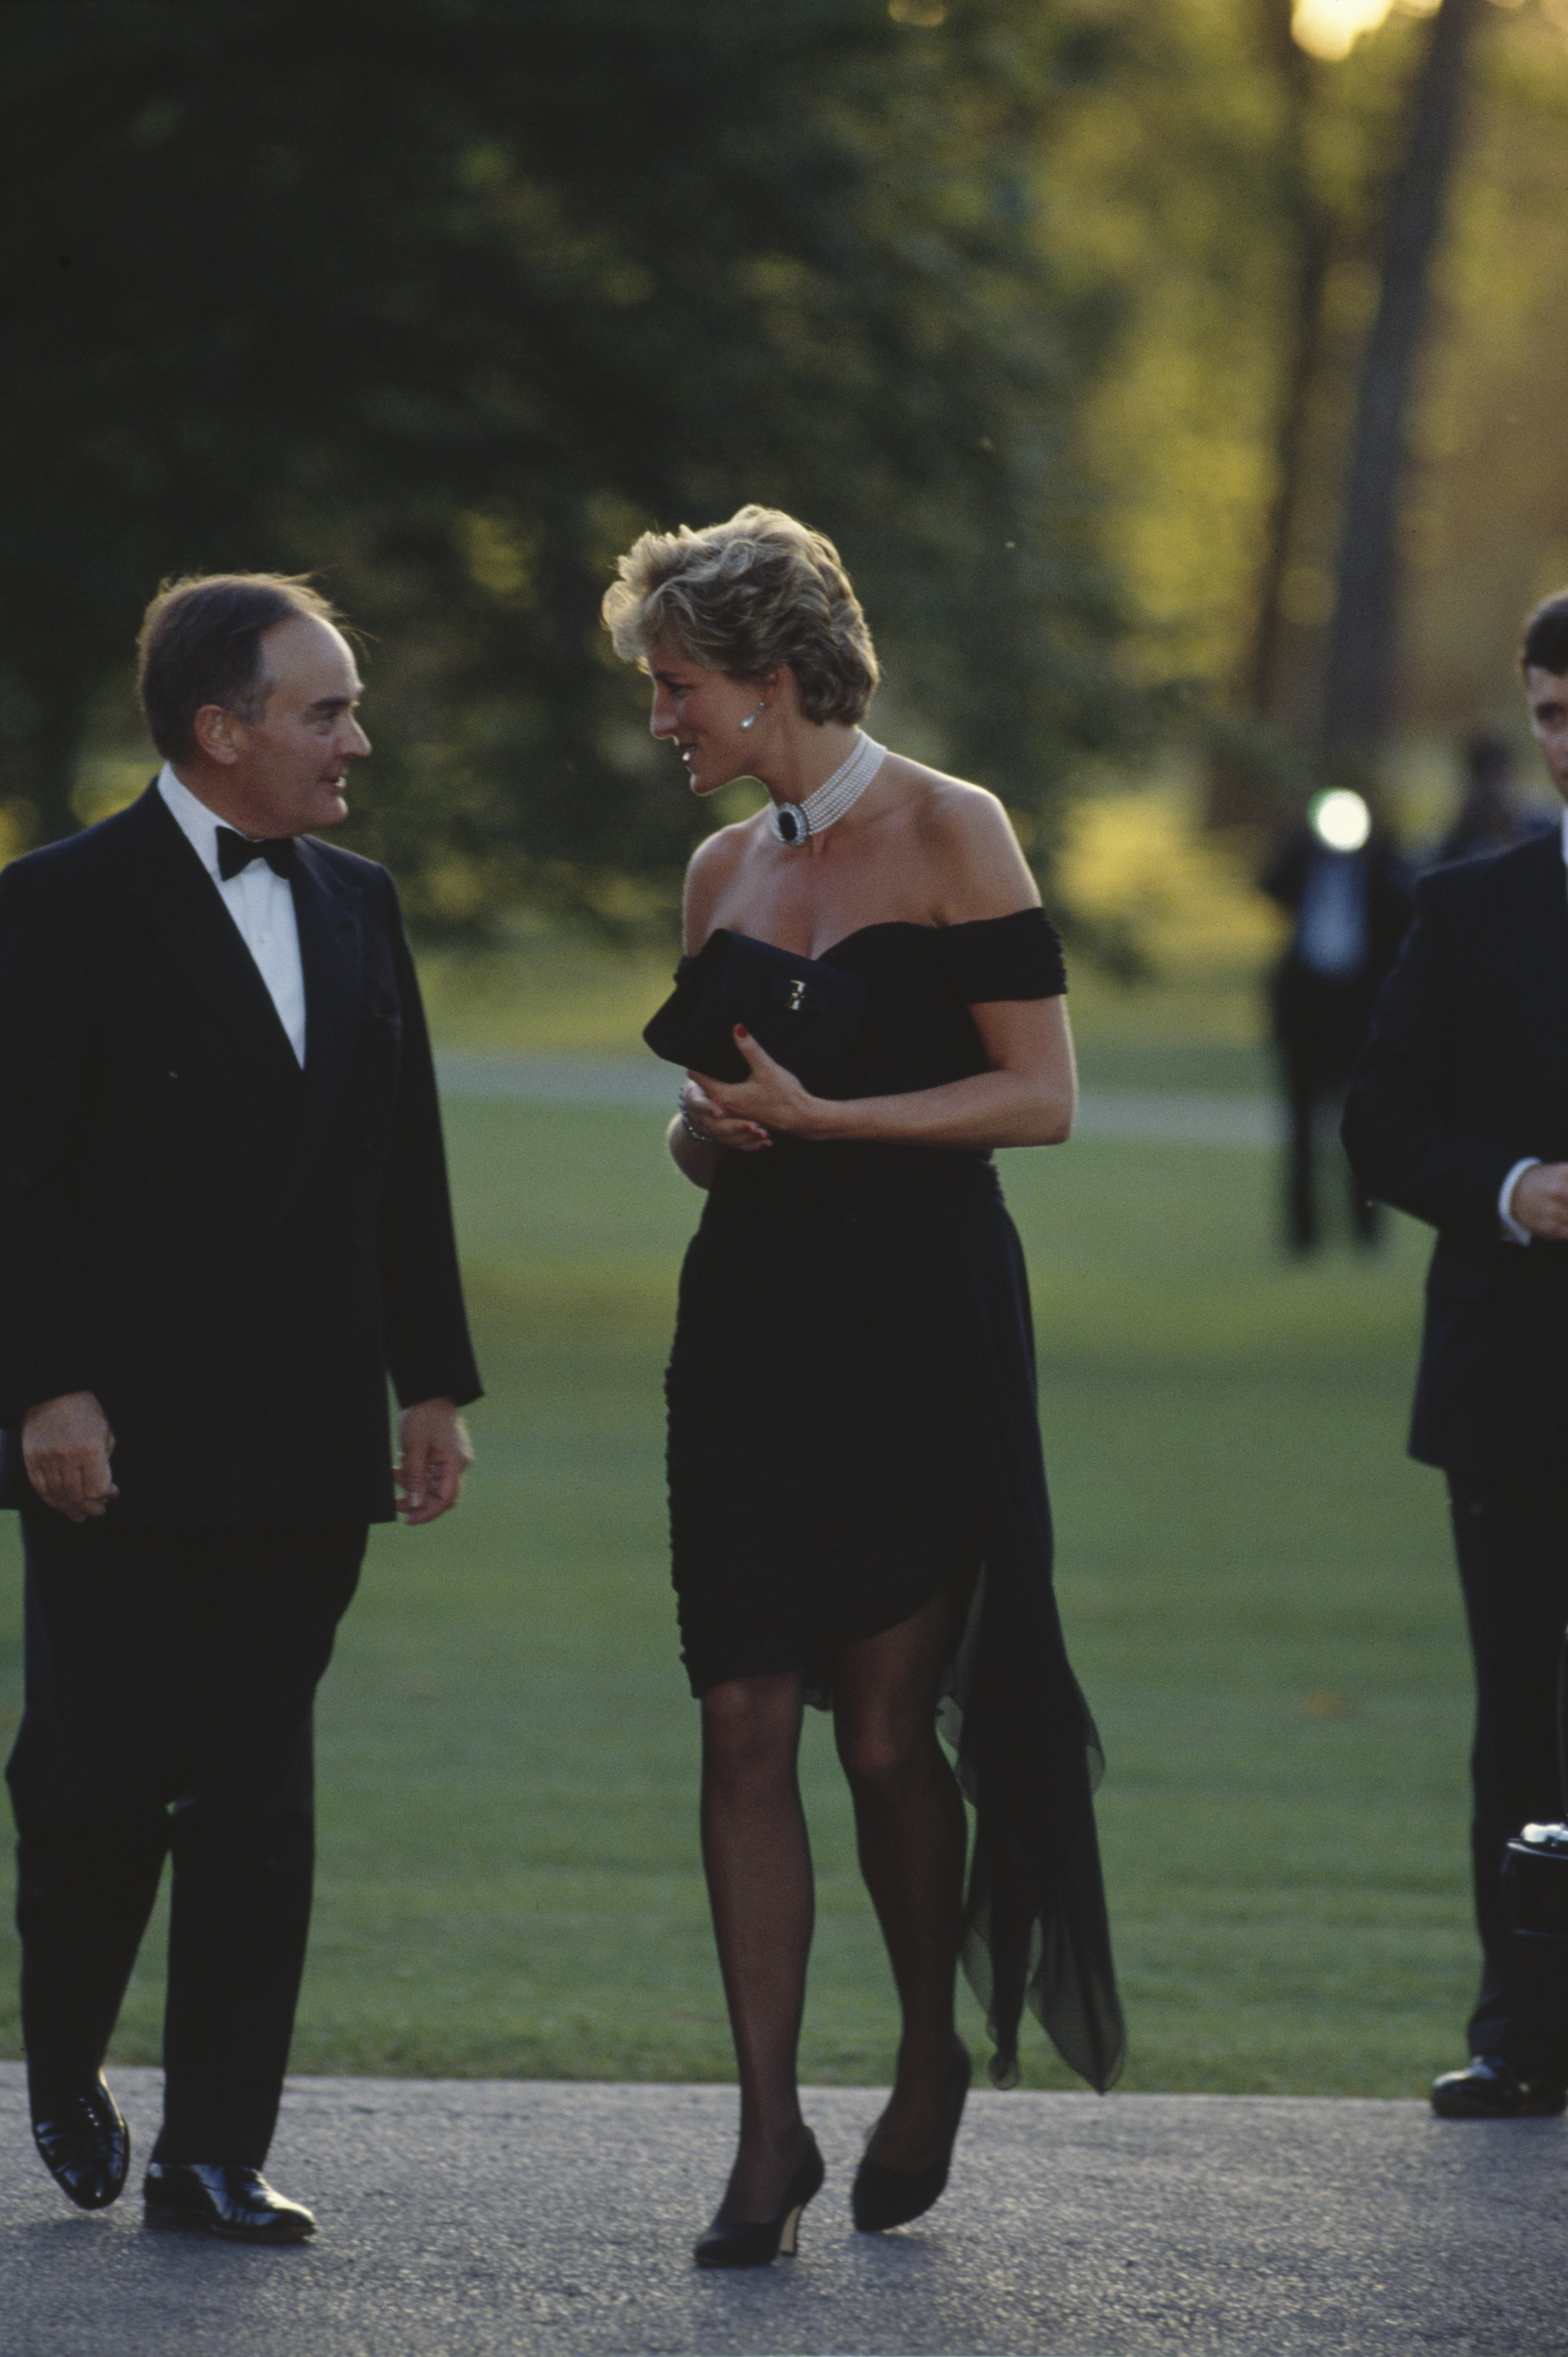 """Prince Diana wearing the """"revenge dress"""" at Vanity Fair's annual fundraiser in 1994. 